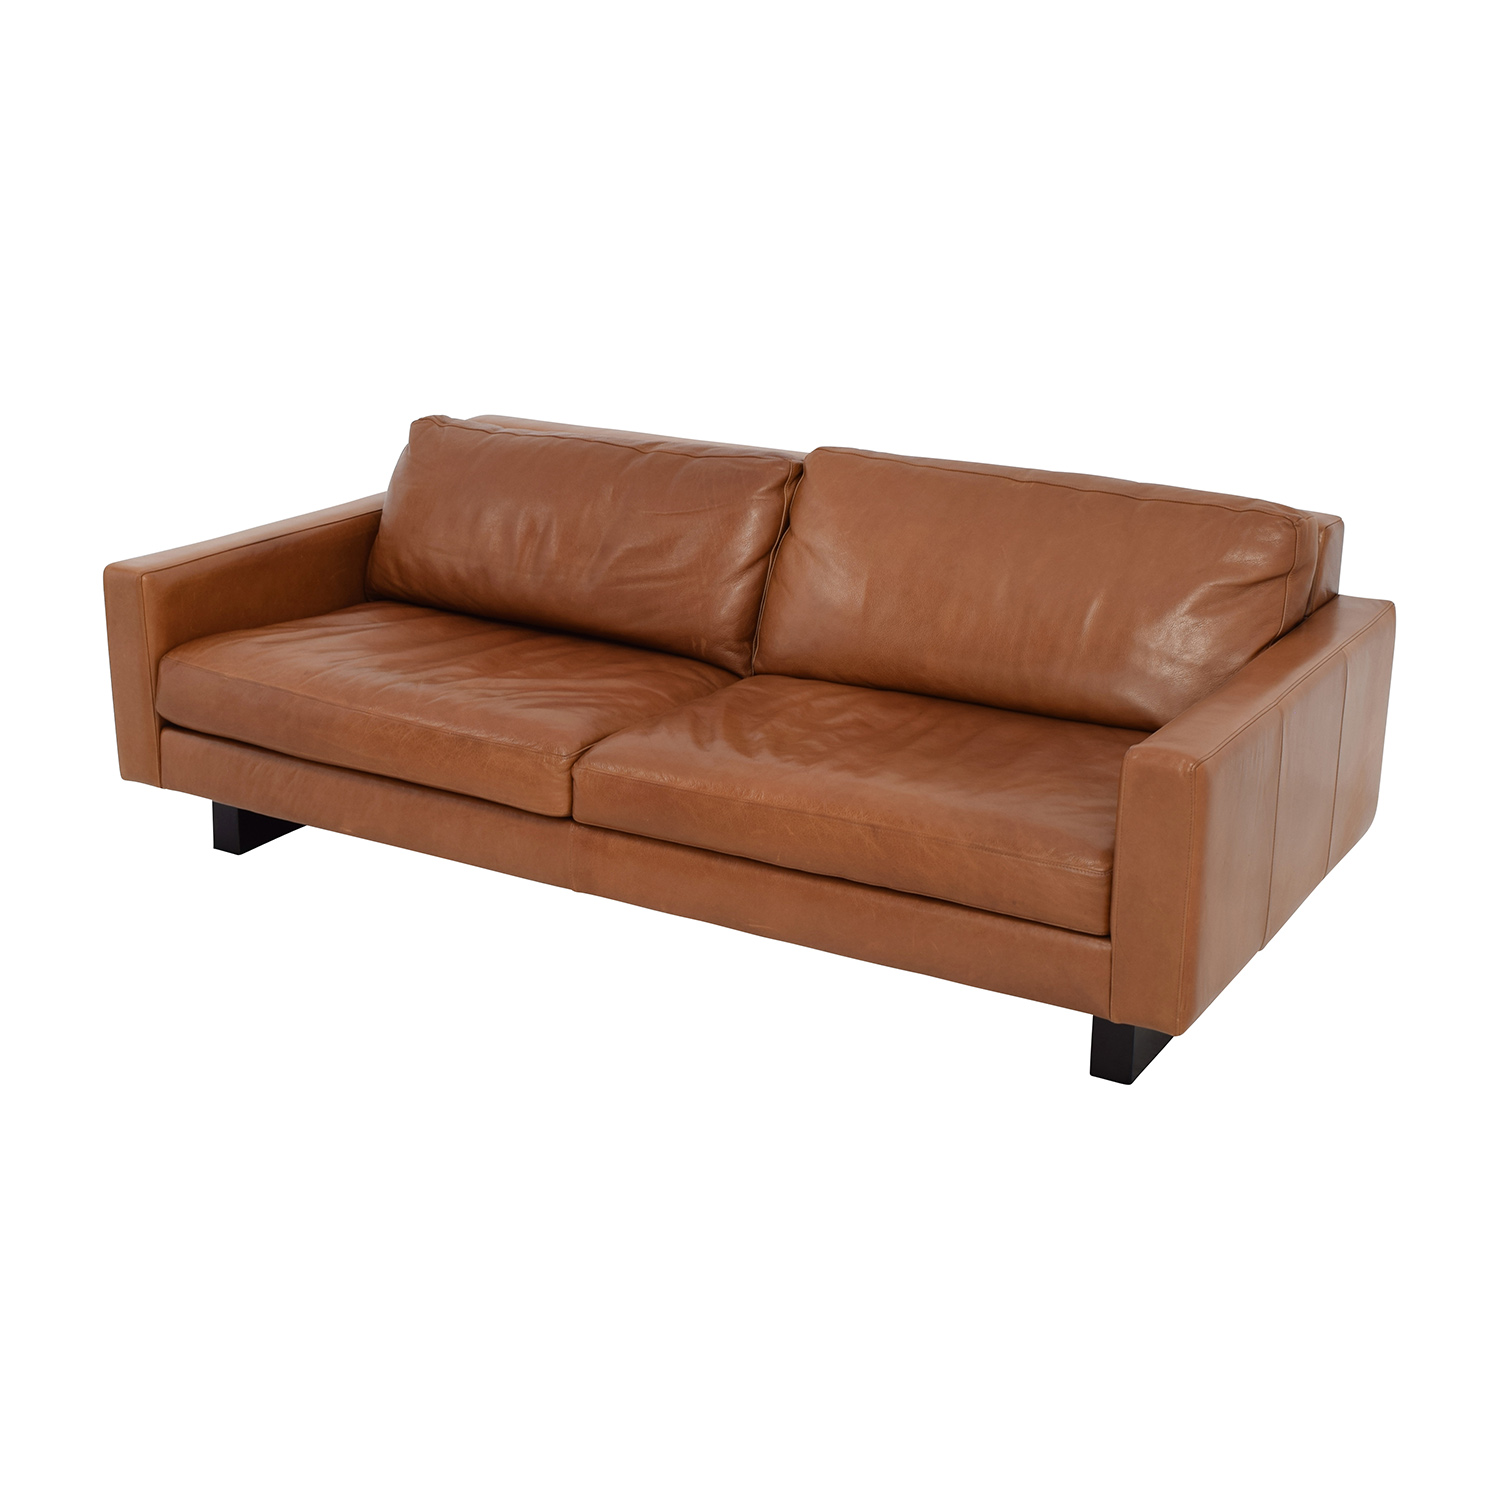 "Room & Board Room & Board 79"" Hess Leather Sofa"